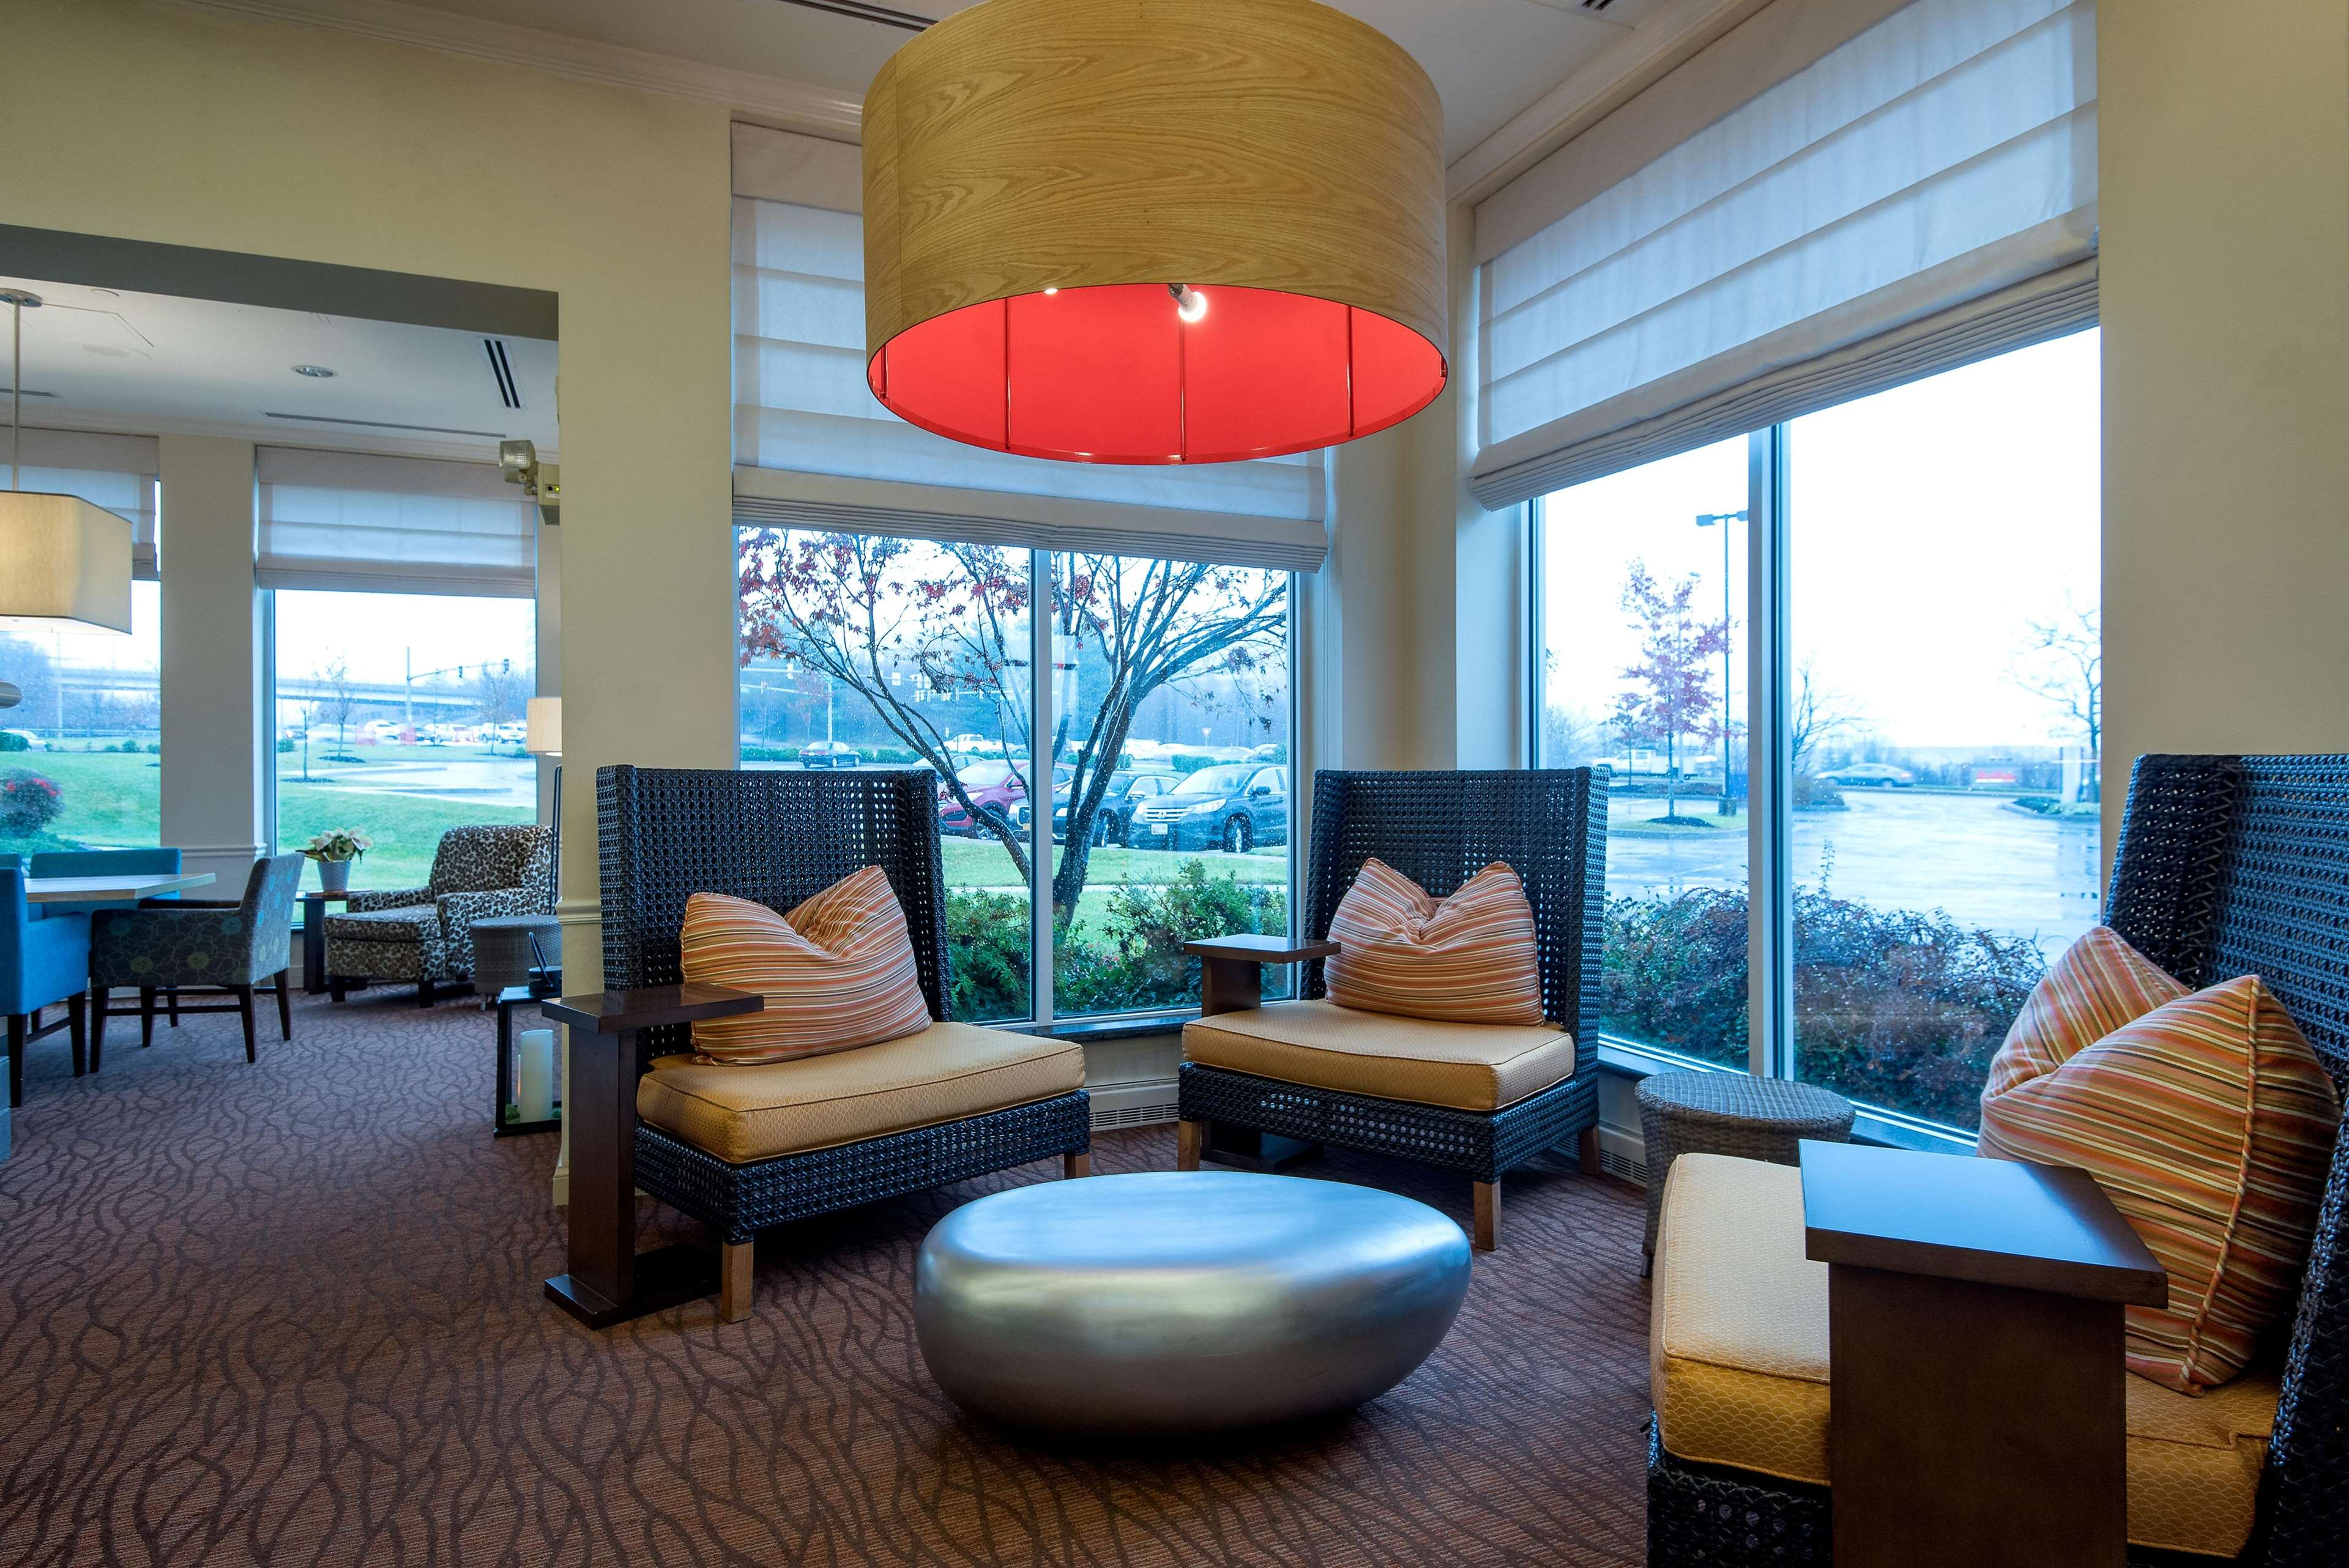 Hilton Garden Inn Baltimore Owings Mills Owings Mills Md Business Directory